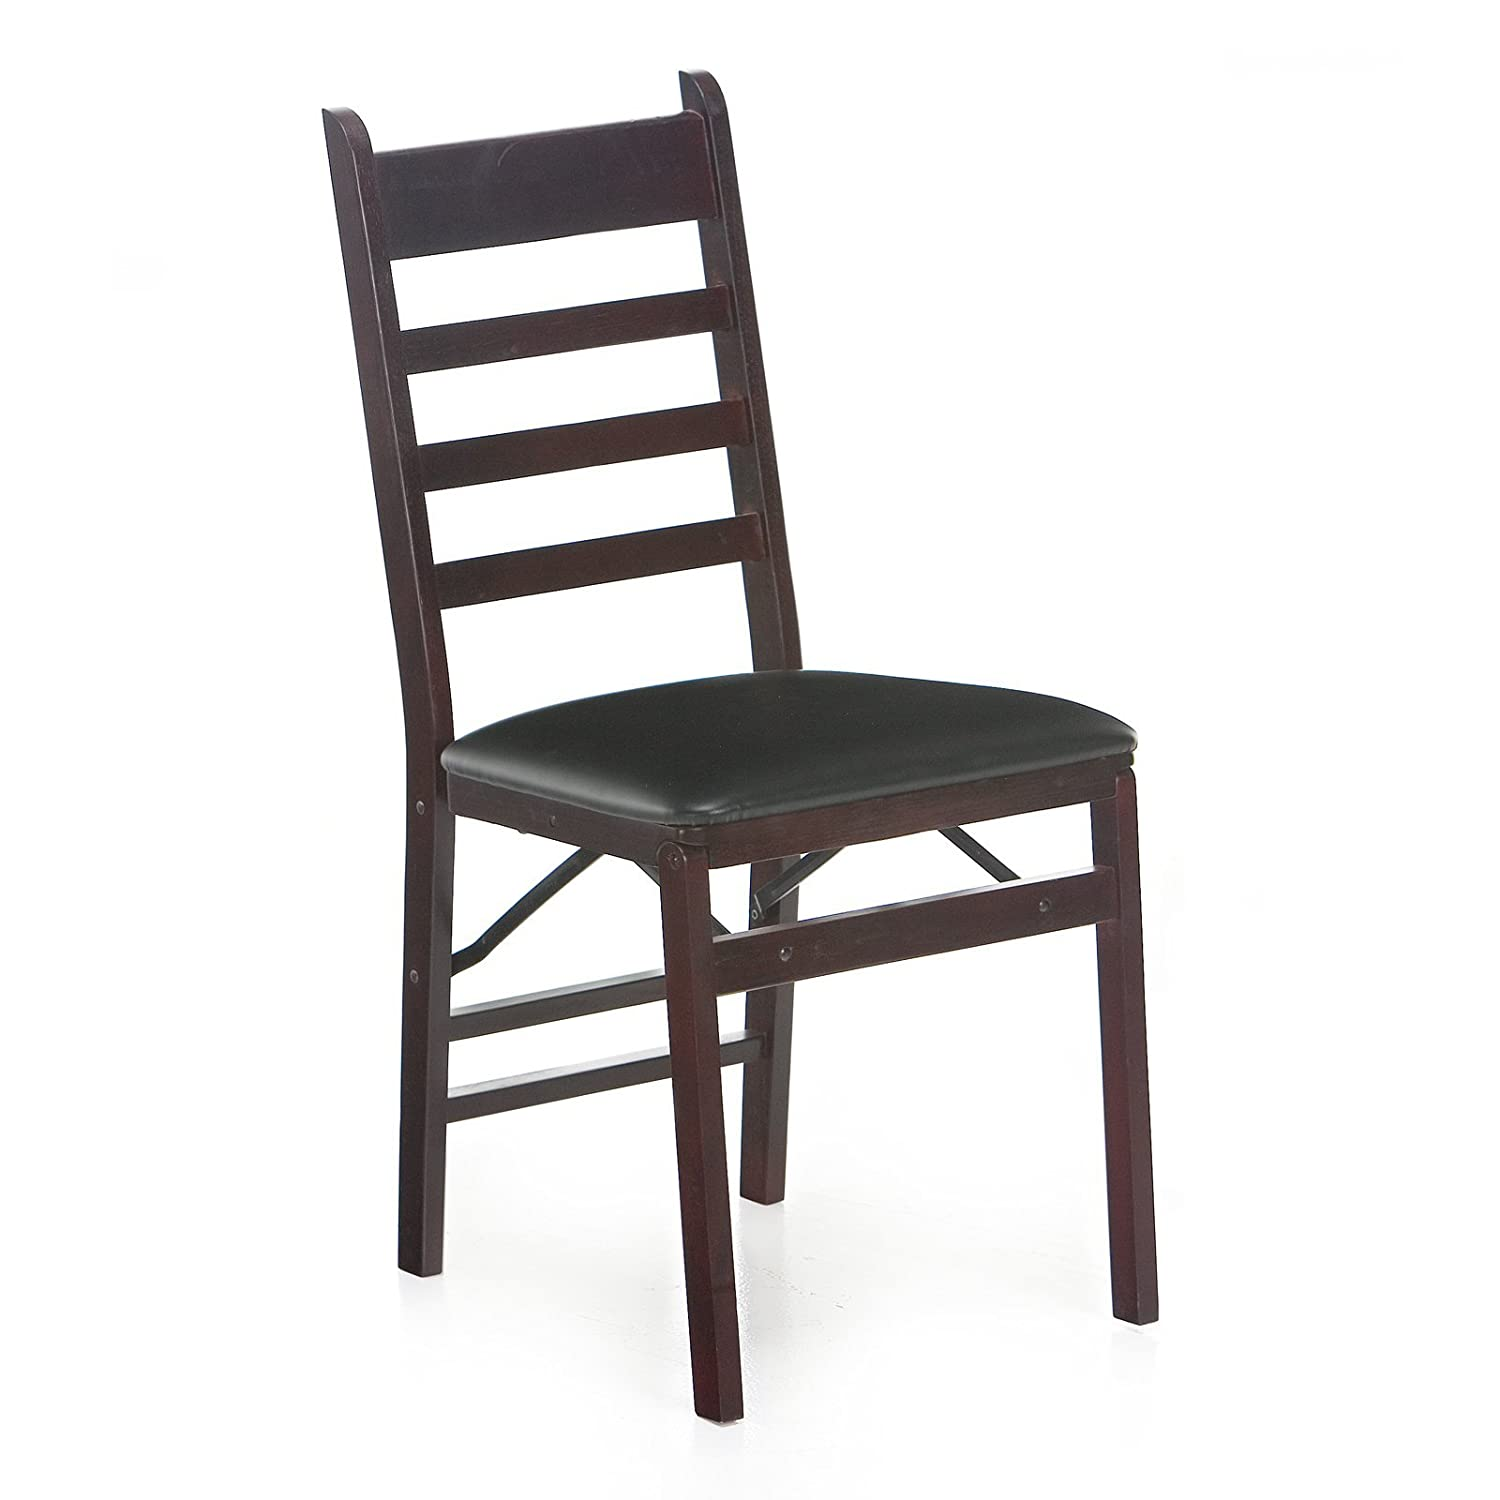 Lovely Cosco Folding Chair Beautiful